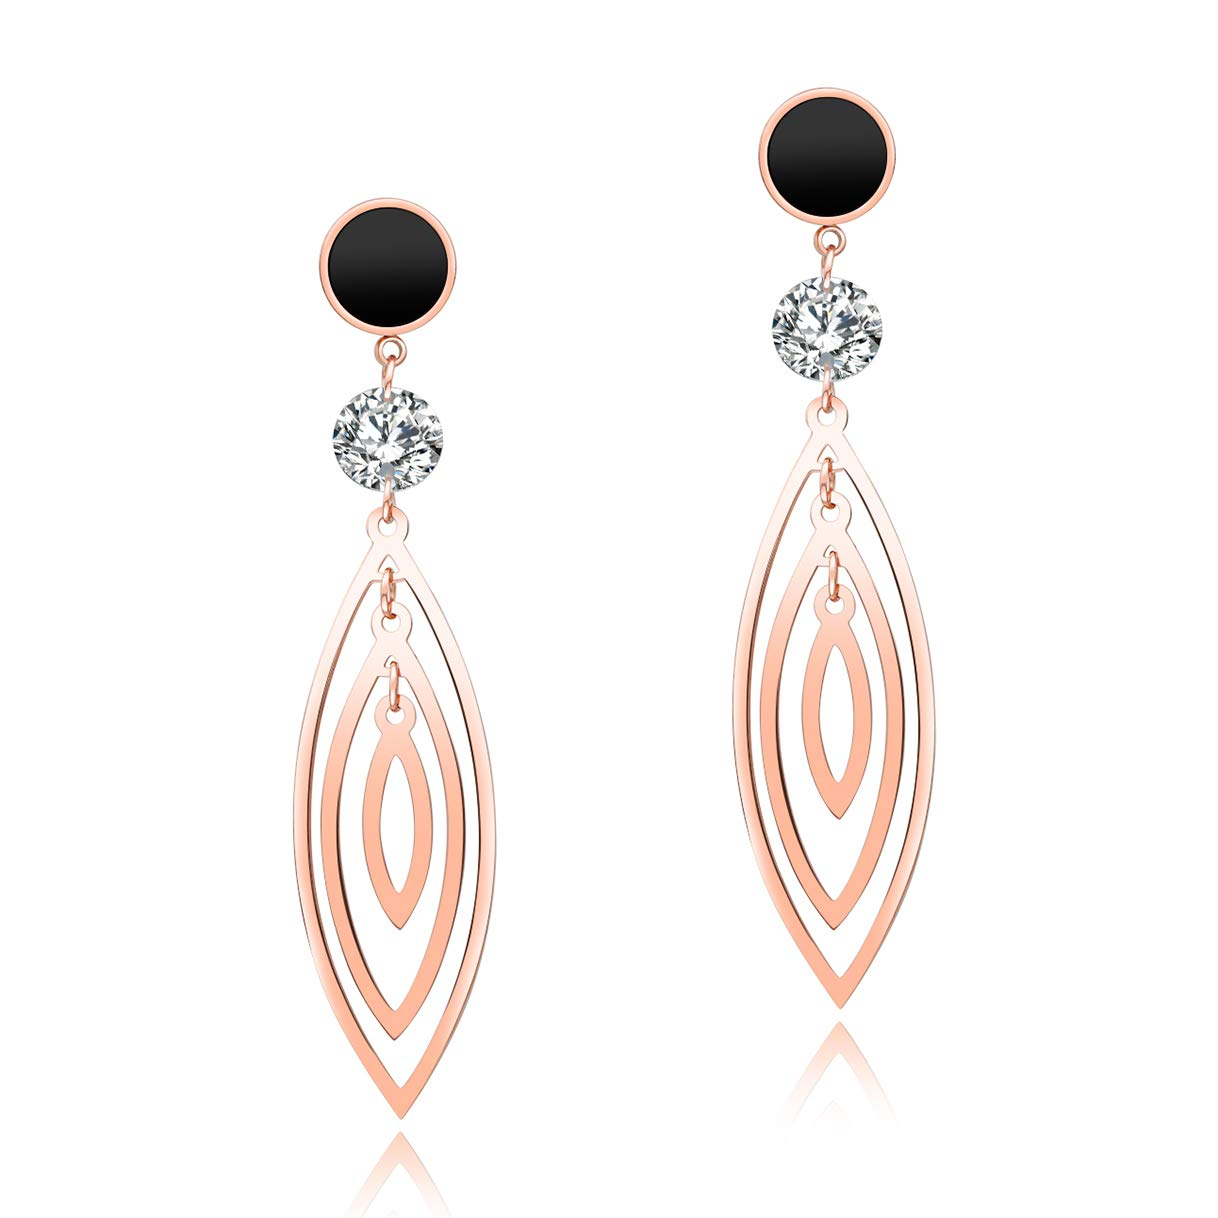 CHARMFAME Ethnic Rose Gold Plated Stainless CZ Drop Earrings Steel Hollow Leaf Dangle Earrings for Women /& Girls